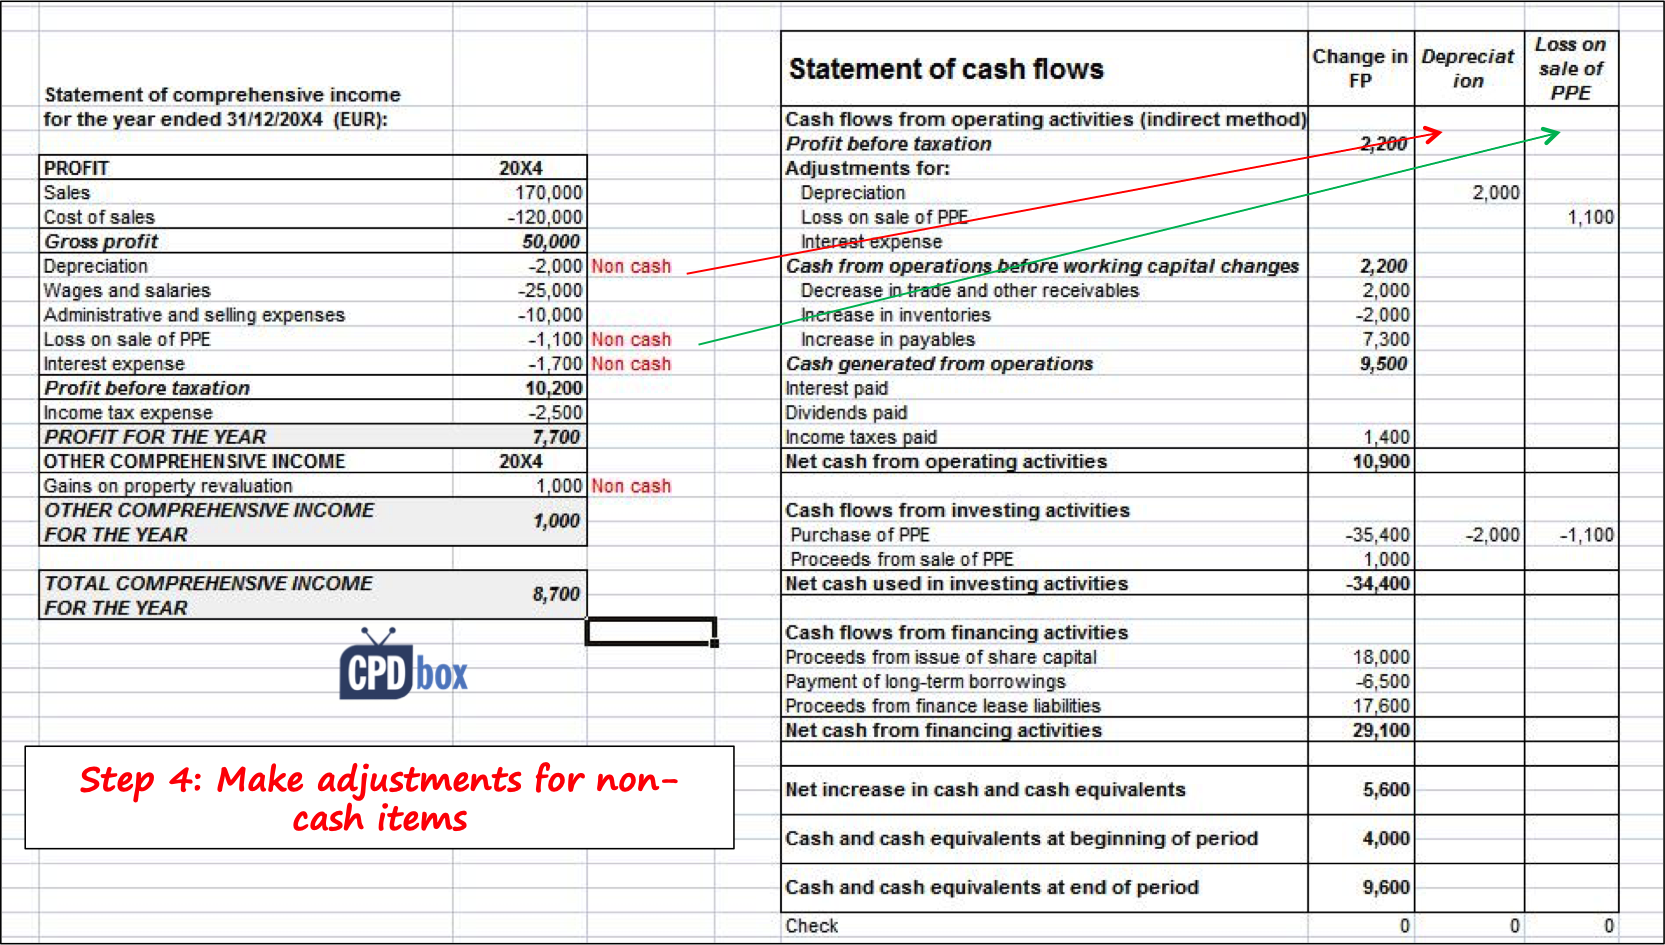 How To Prepare Statement Of Cash Flows In 7 Steps Cpdbox Making Ifrs Easy